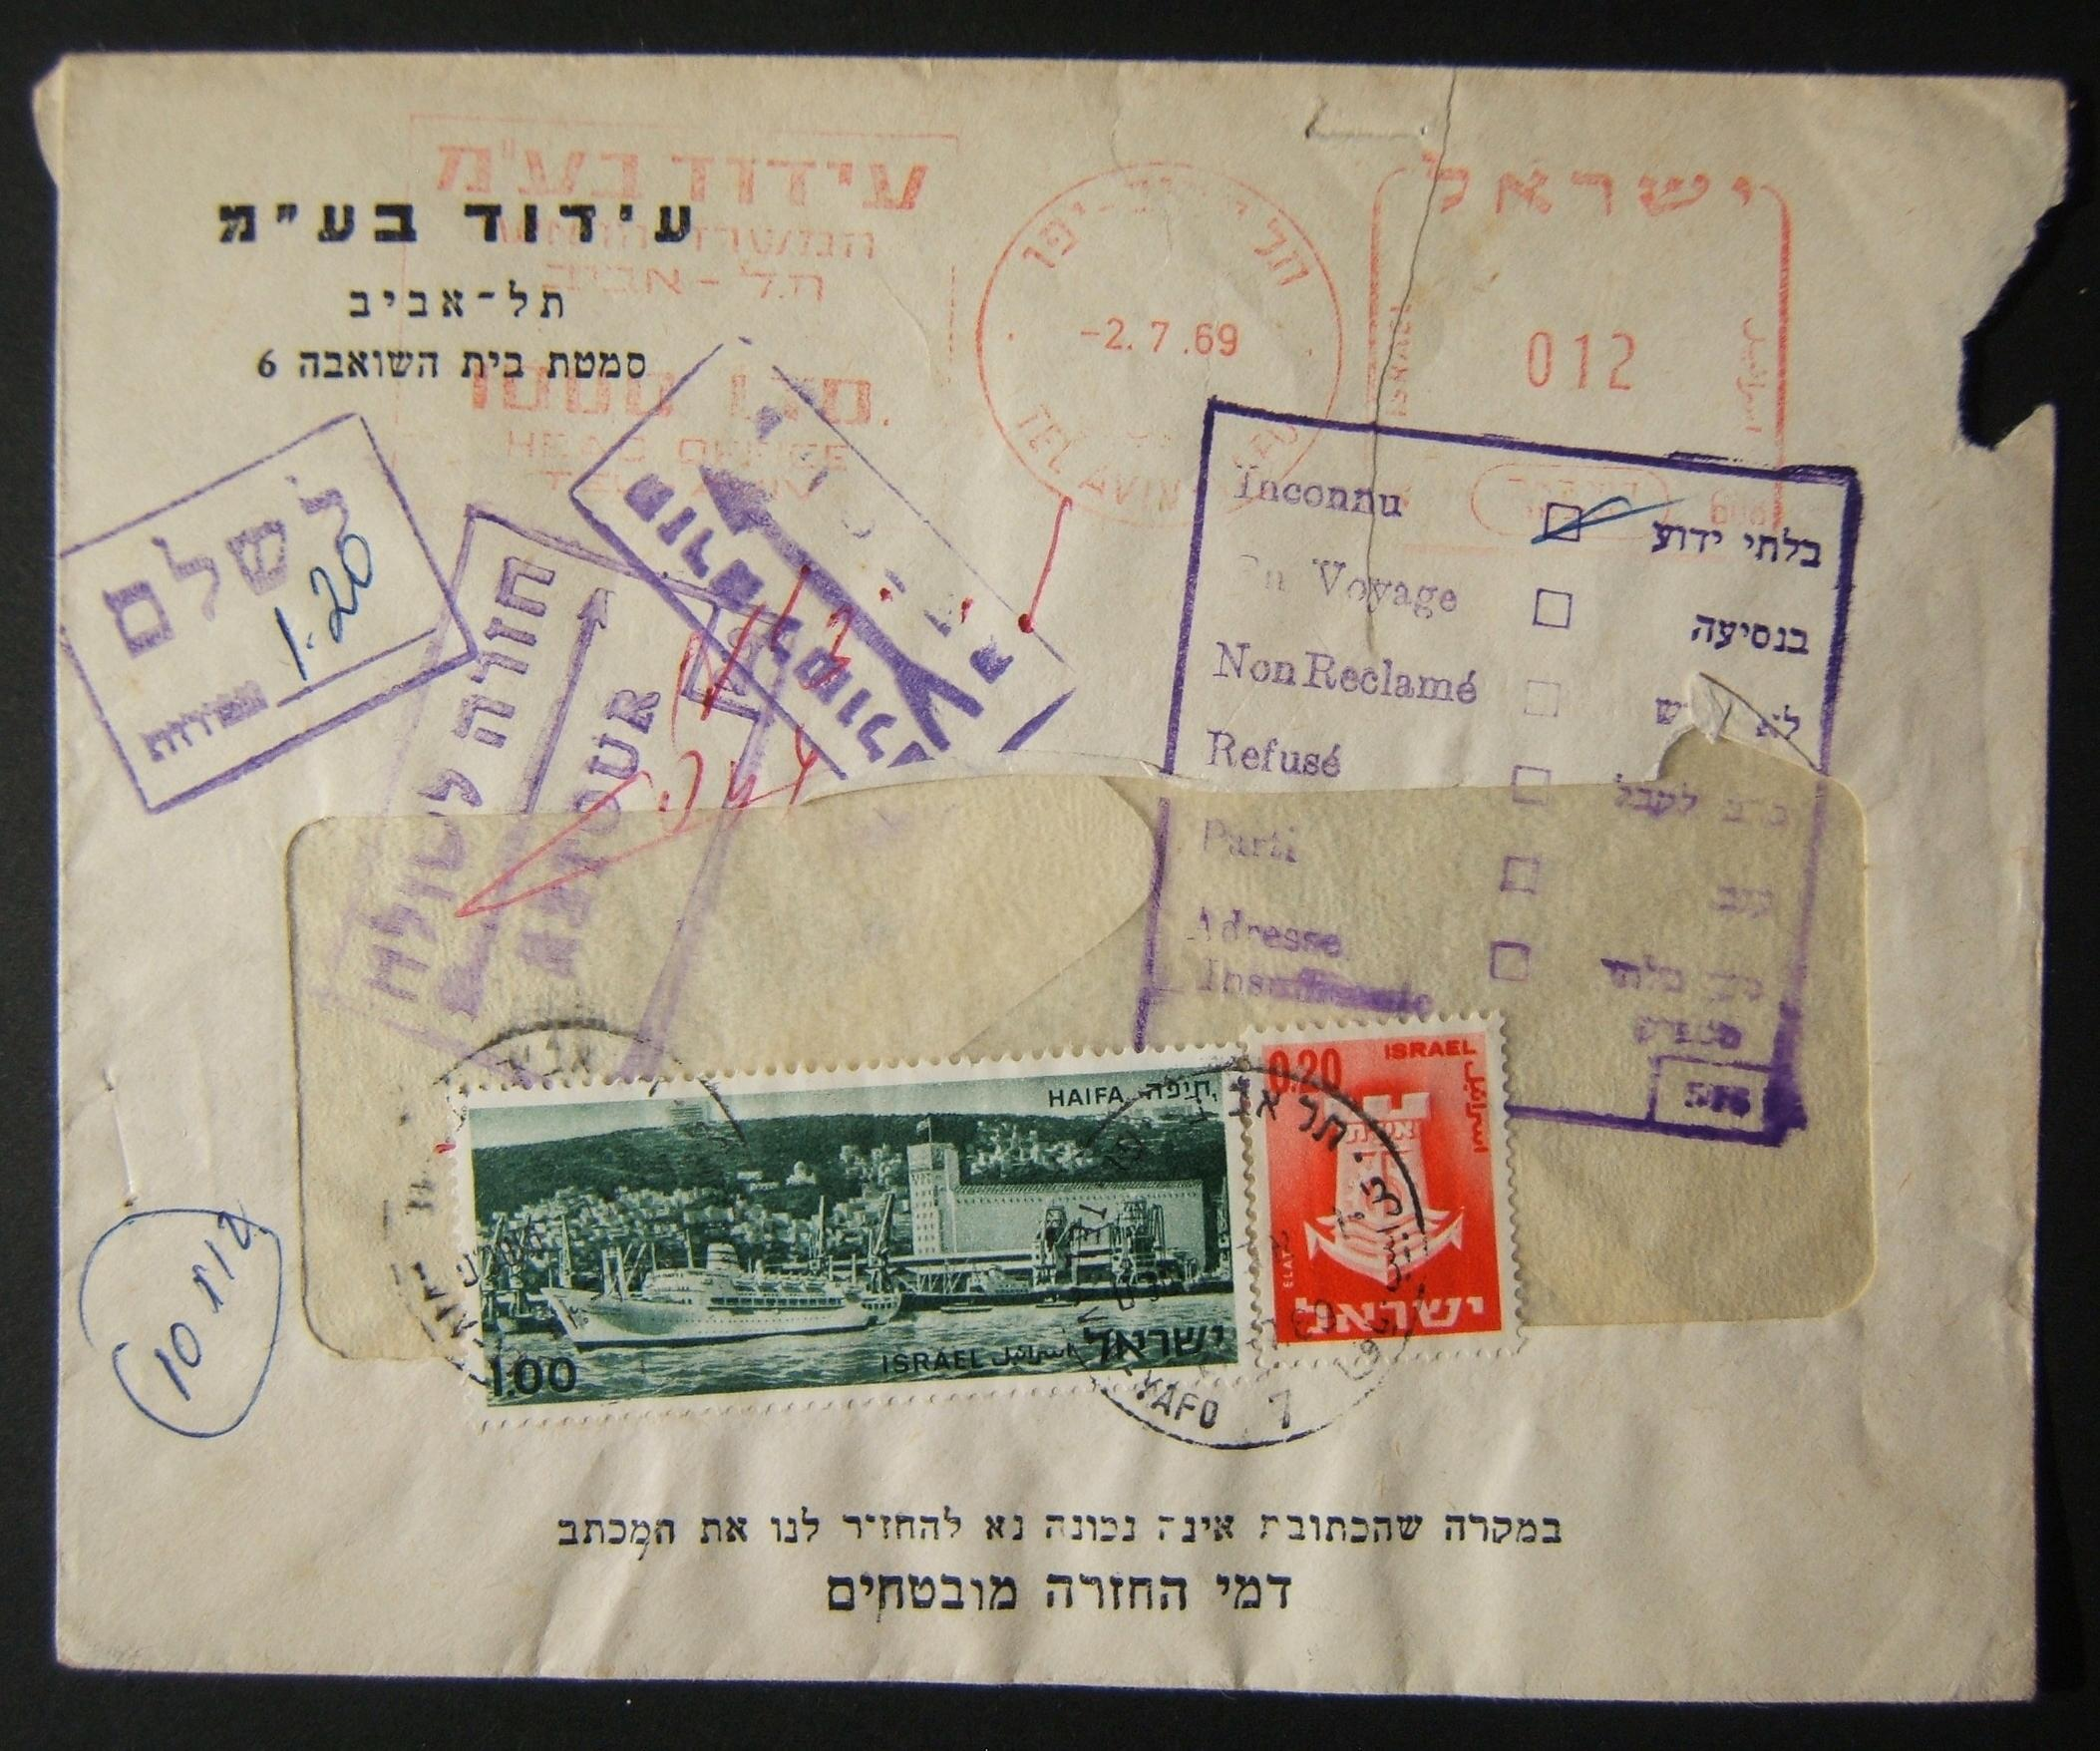 1969 domestic 'top of the pile' taxed franking: 2-7-69 printed matter cover ex TLV branch of Idud Ltd. and franked by meter payment at the DO-12 period 12 Ag PM rate but returned t